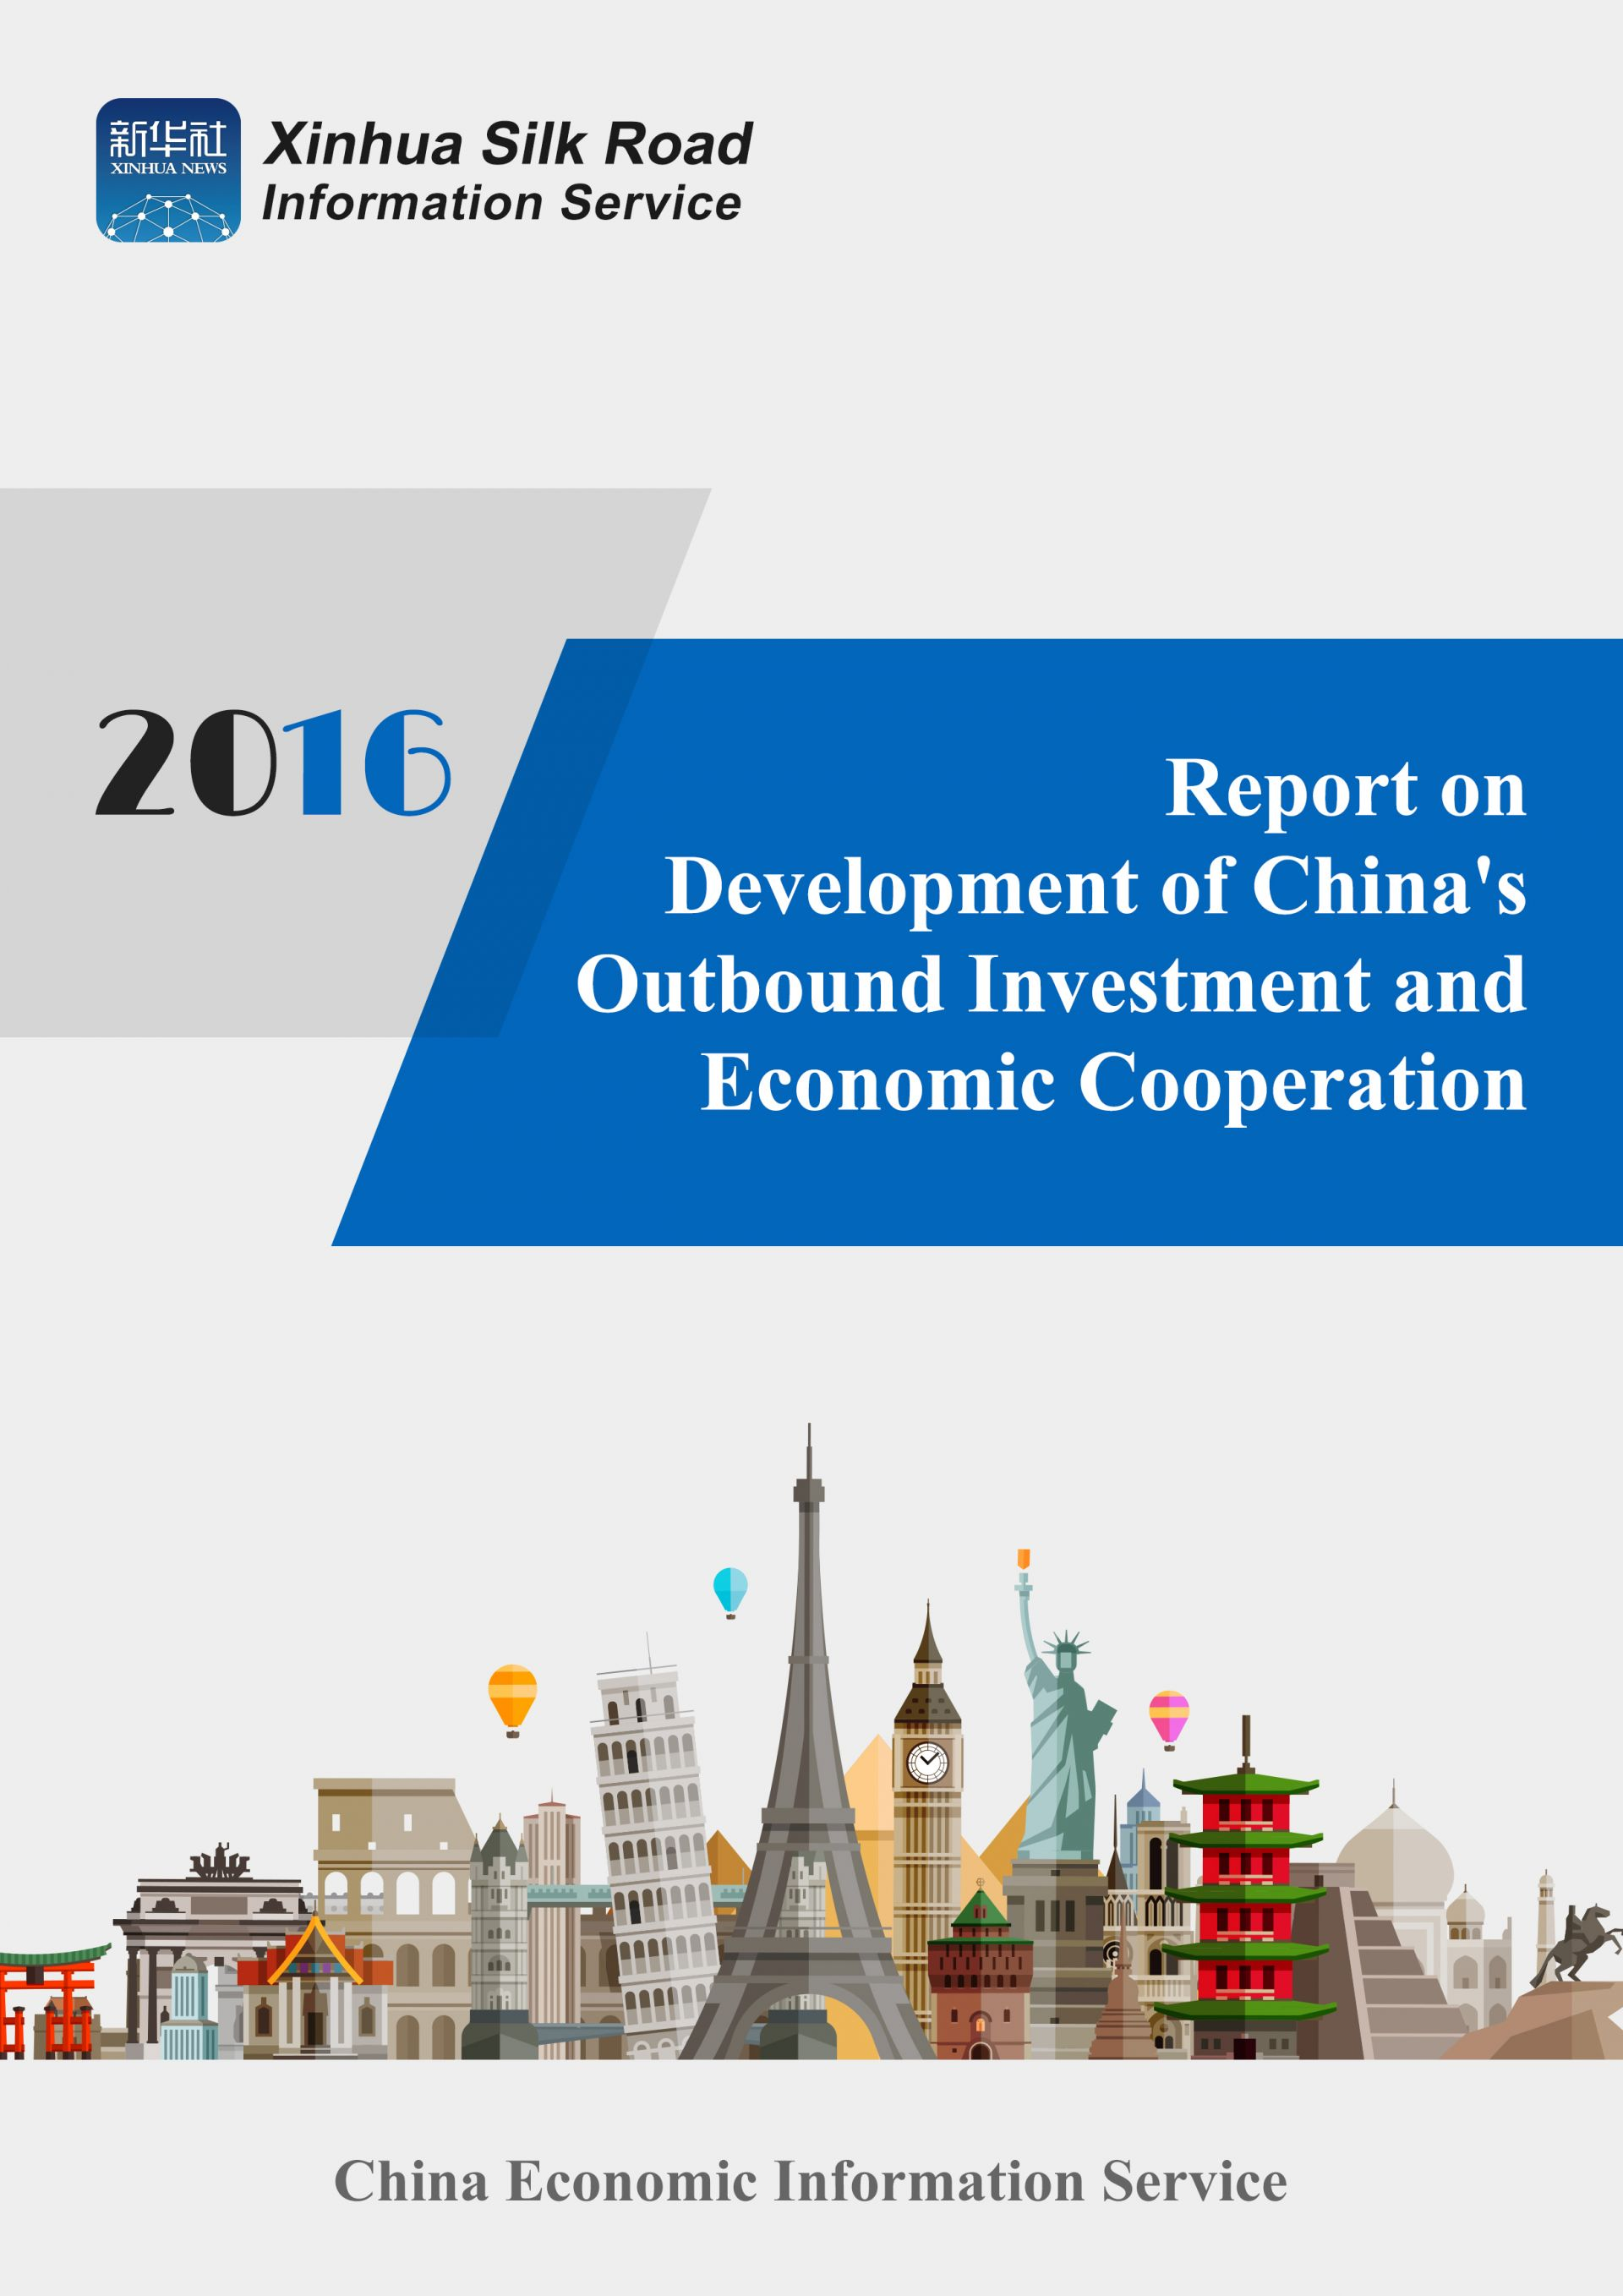 Report on Development of China's Outbound Investment and Economic Cooperation (2016)